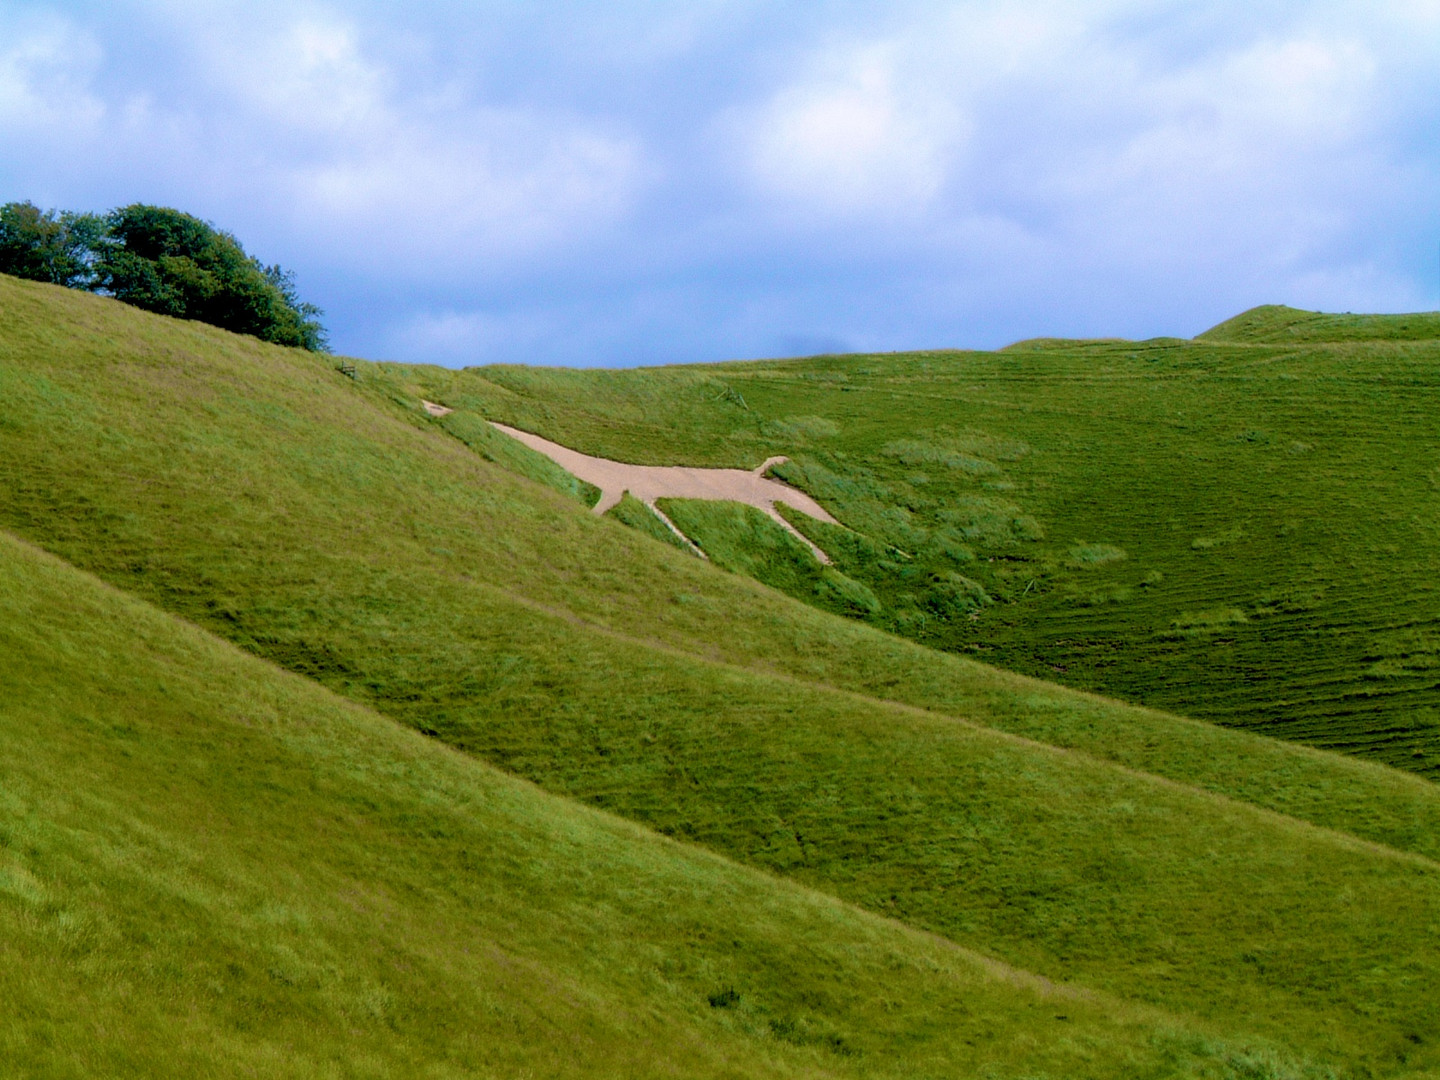 The Cherhill White Horse, Wiltshire, England